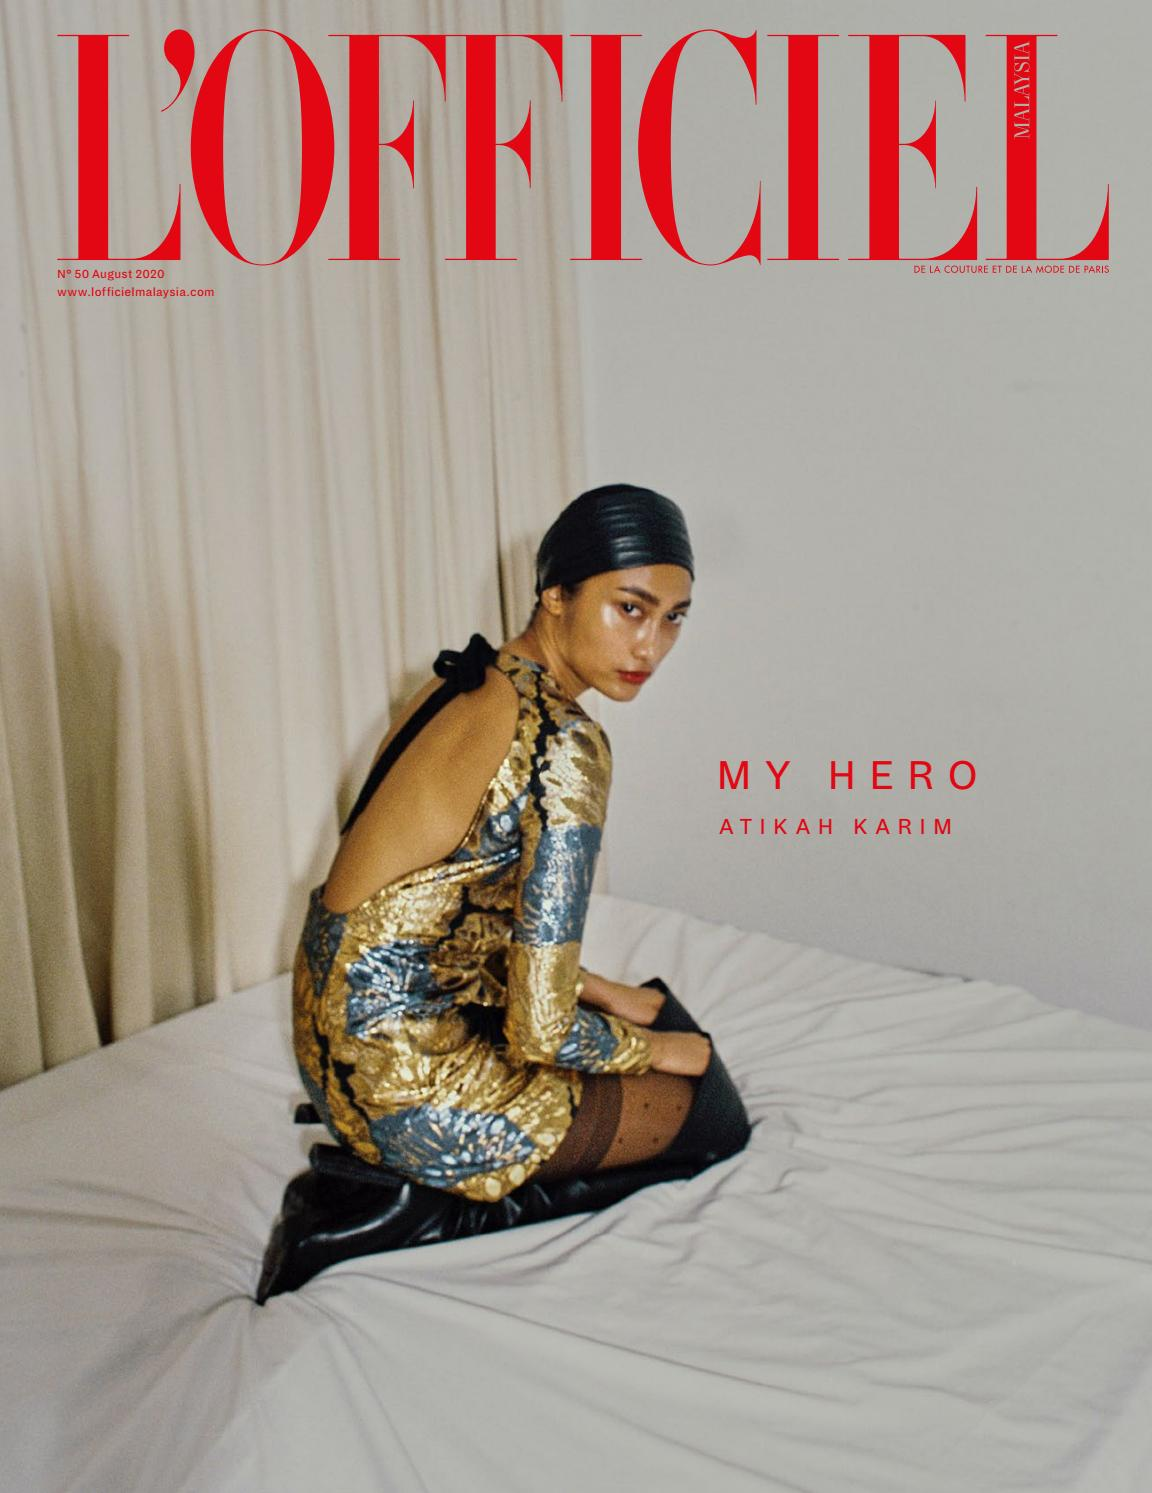 L'Officiel Malaysia N°50 August 2020 by L'Officiel Inc. - issuu